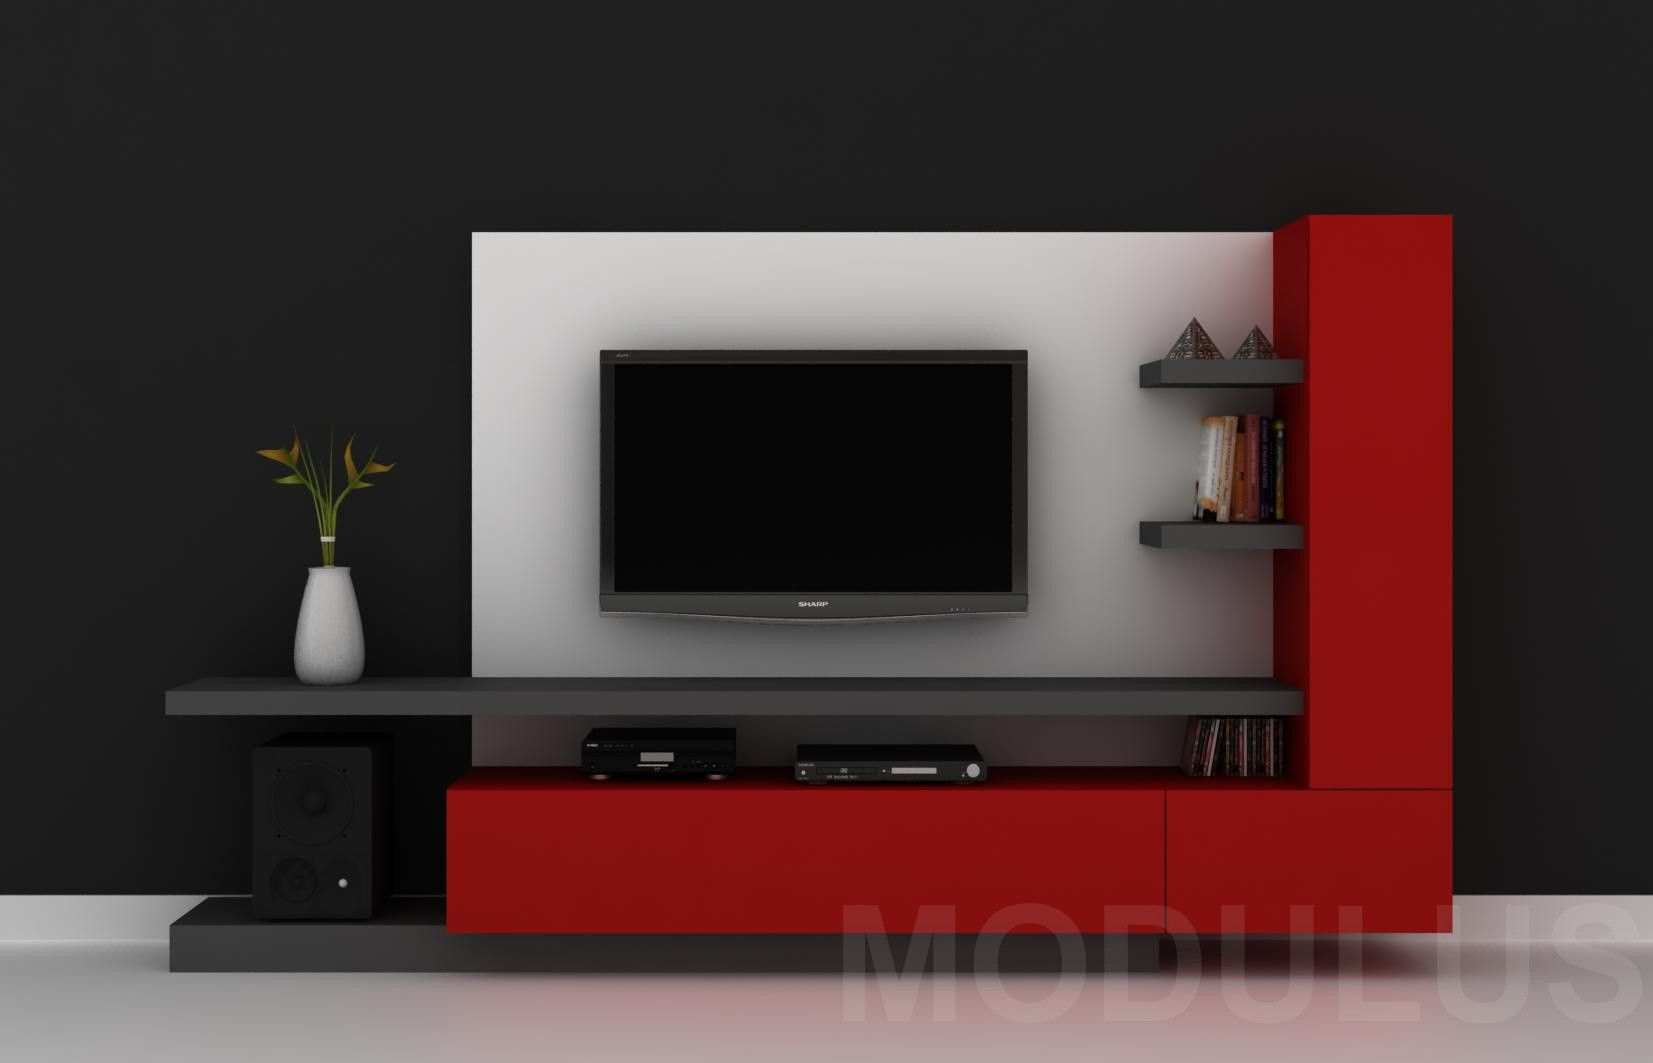 Modulares para living tv lcd led wall unit muebles - Mueble televisor moderno ...